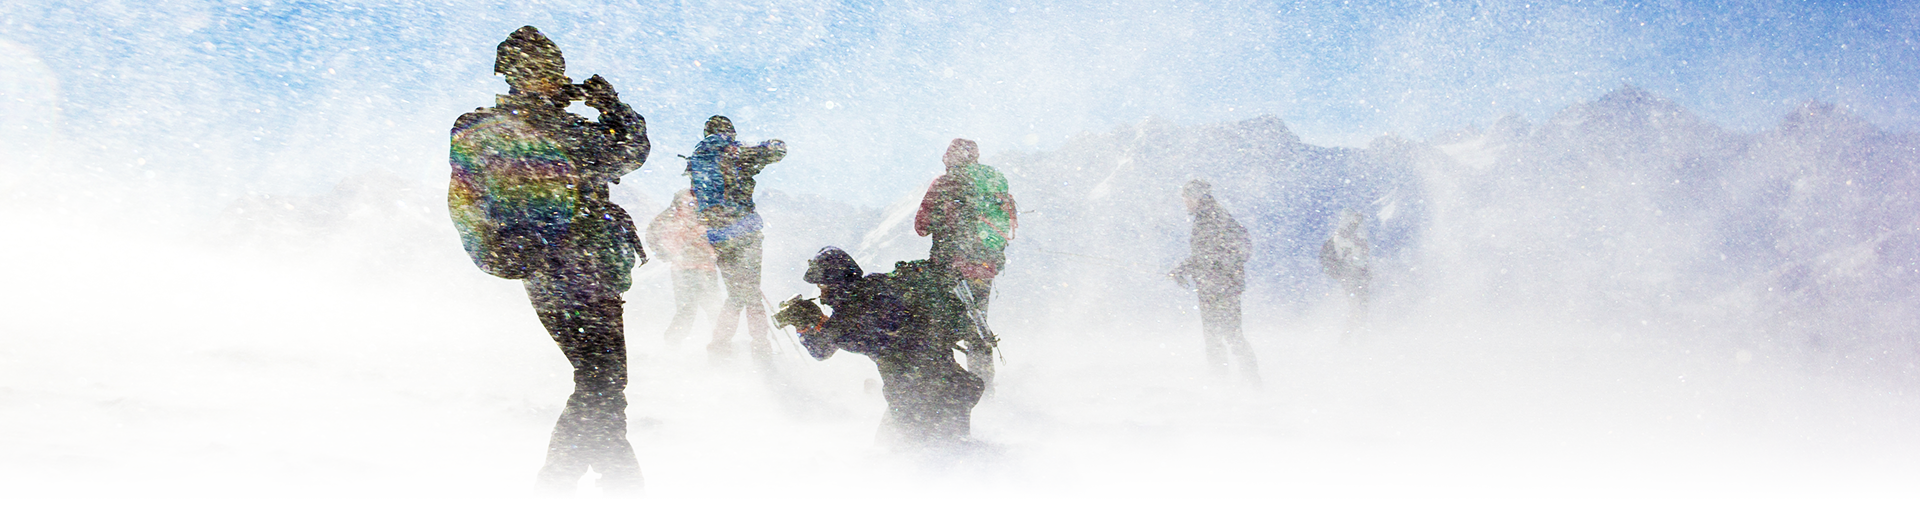 Photography Tips for Perfect Snowy Photos: Dealing with snowfall